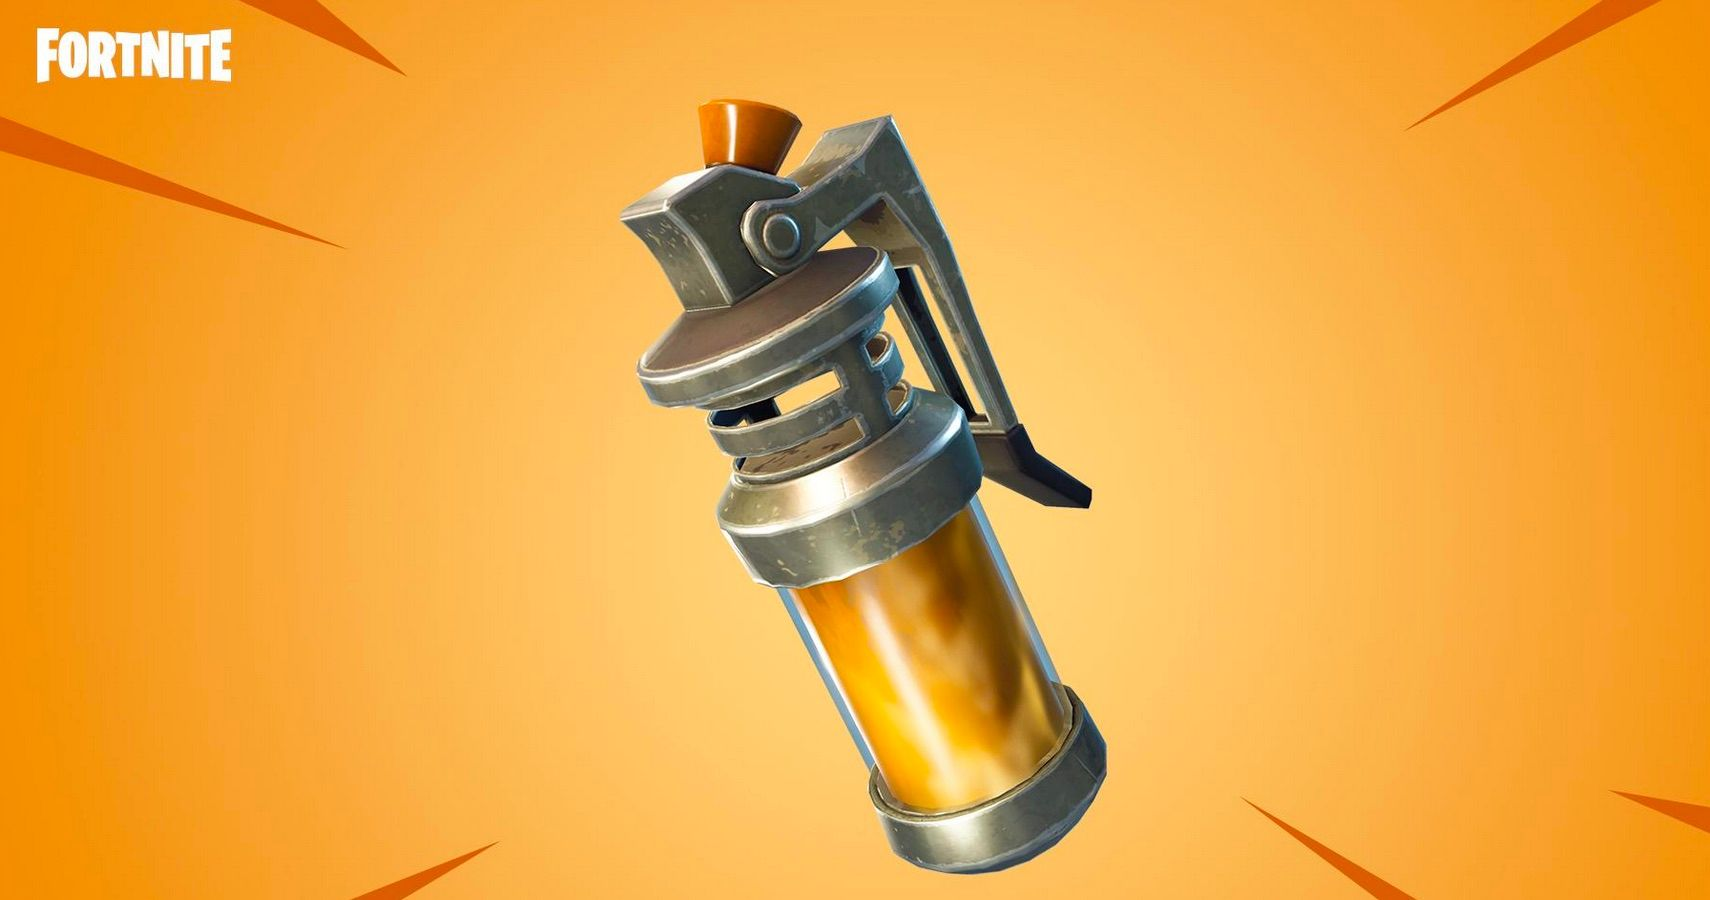 Fortnite Temporarily Disables Grenades After Players